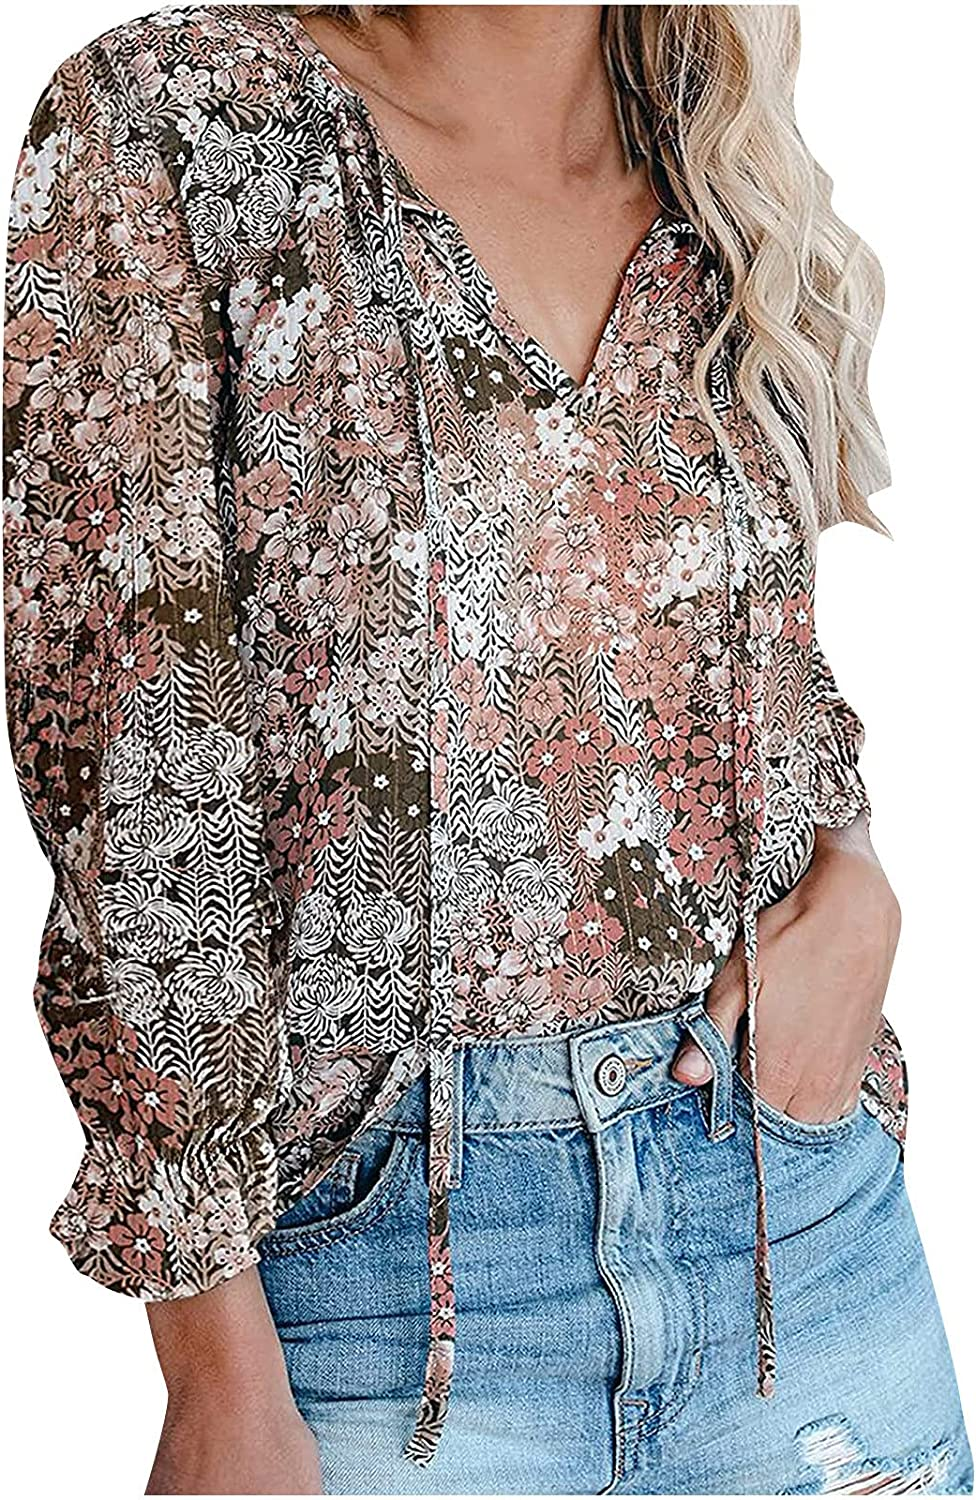 Tops for Women Casual Summer Bohemian Floral Printed Blouse Fall V-Neck Long Sleeve Shirt Casual Loose T-Shirt